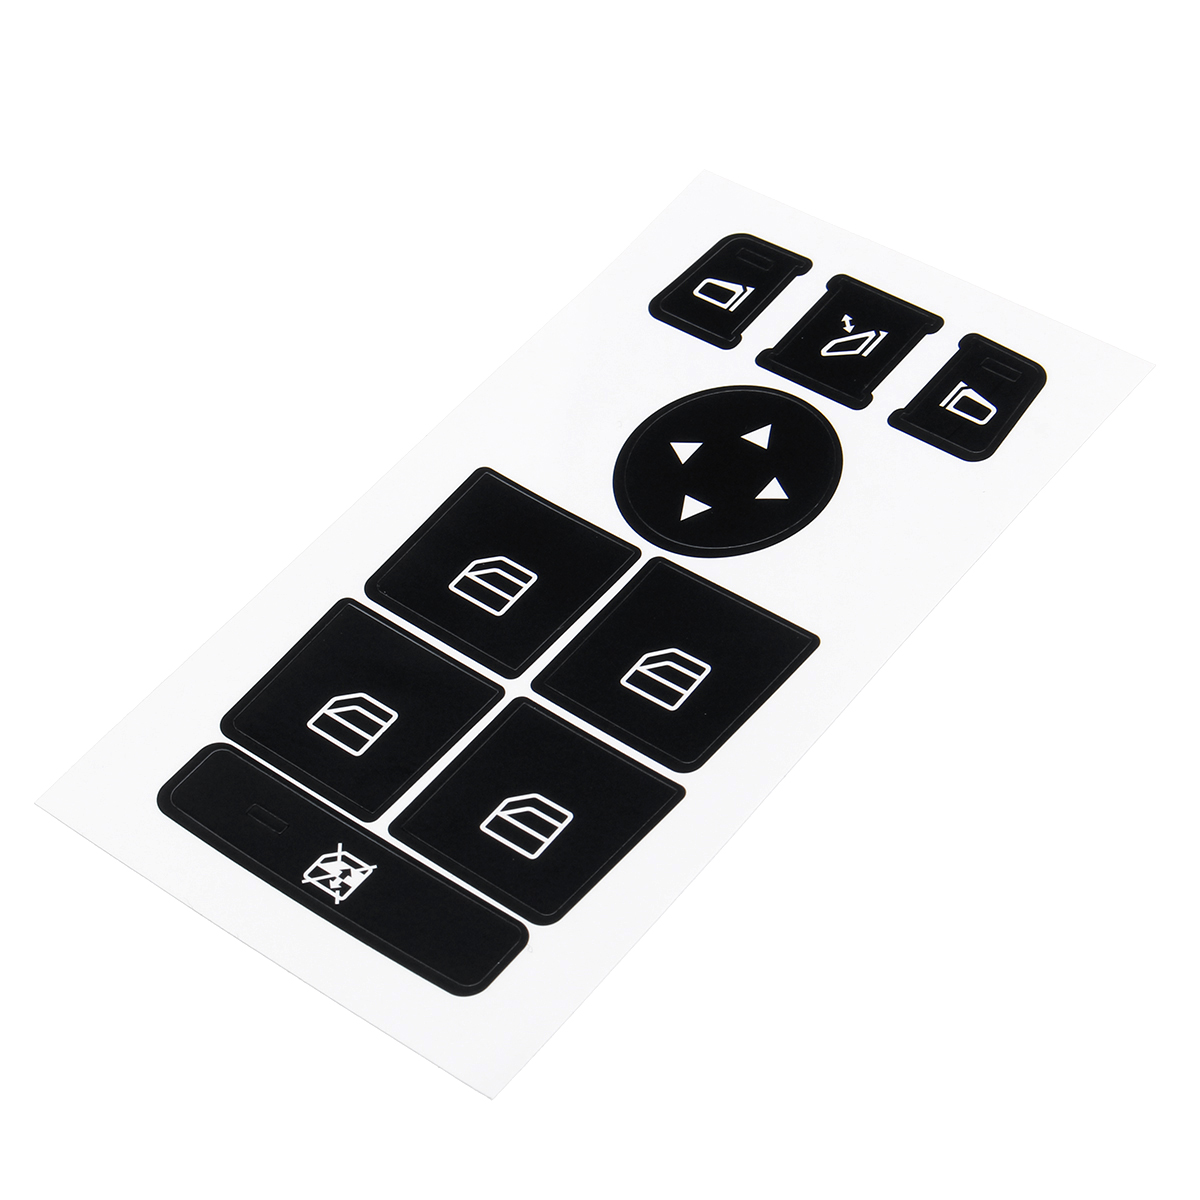 Car Window Switch Button Repair Stickers For <font><b>Mercedes</b></font> For Benz 2008-2014 W204 <font><b>C300</b></font> C350 Button Repair Kit Fix Faded Ugly Buttons image